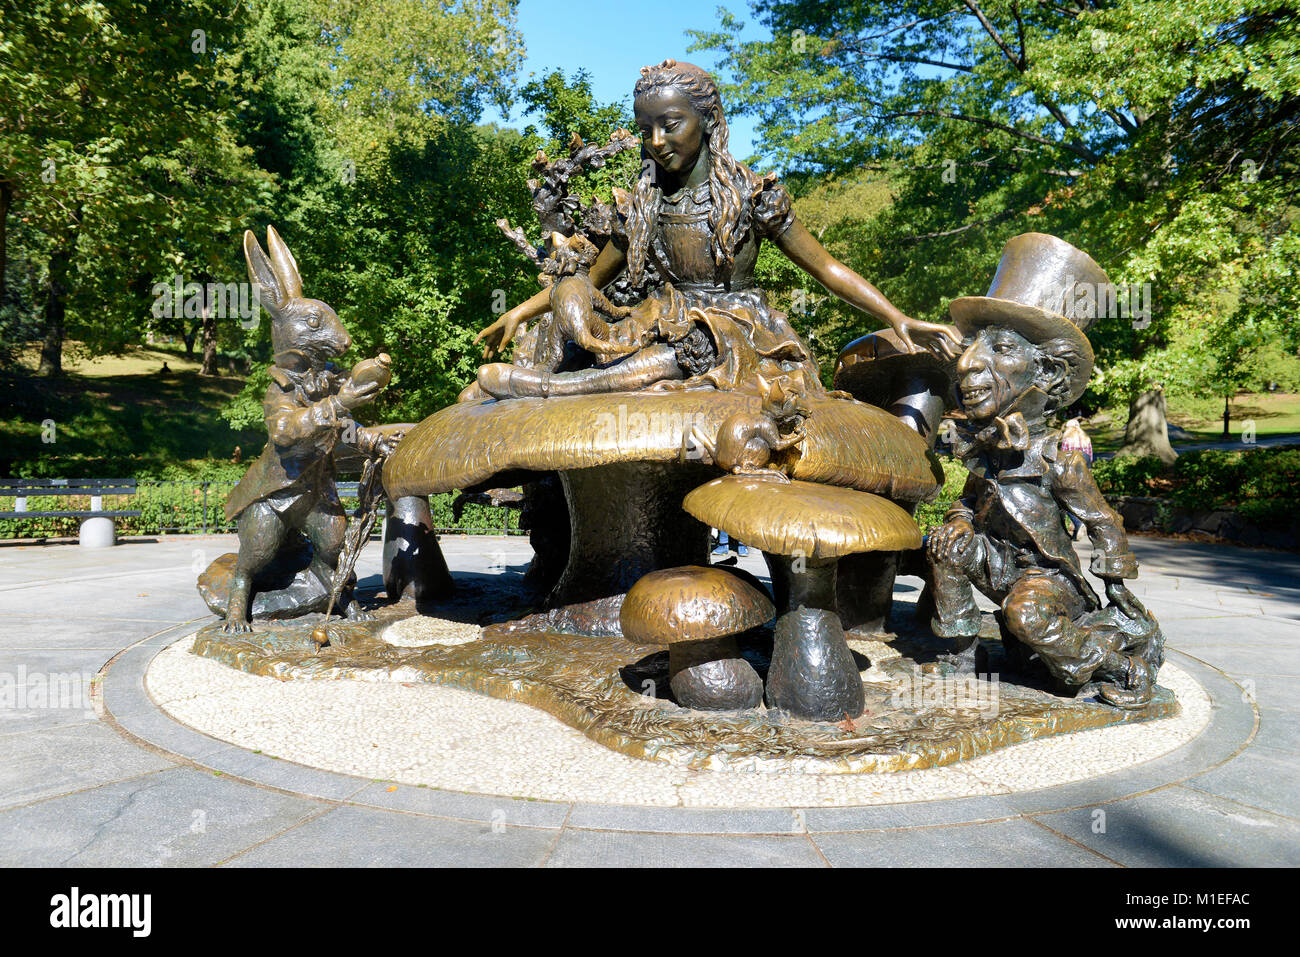 MONUMENT TO LEWIS CARROLL'S ALICE IN WONDERLAND presented May 7 1959 to the city of New York by George and Margarita - Stock Image